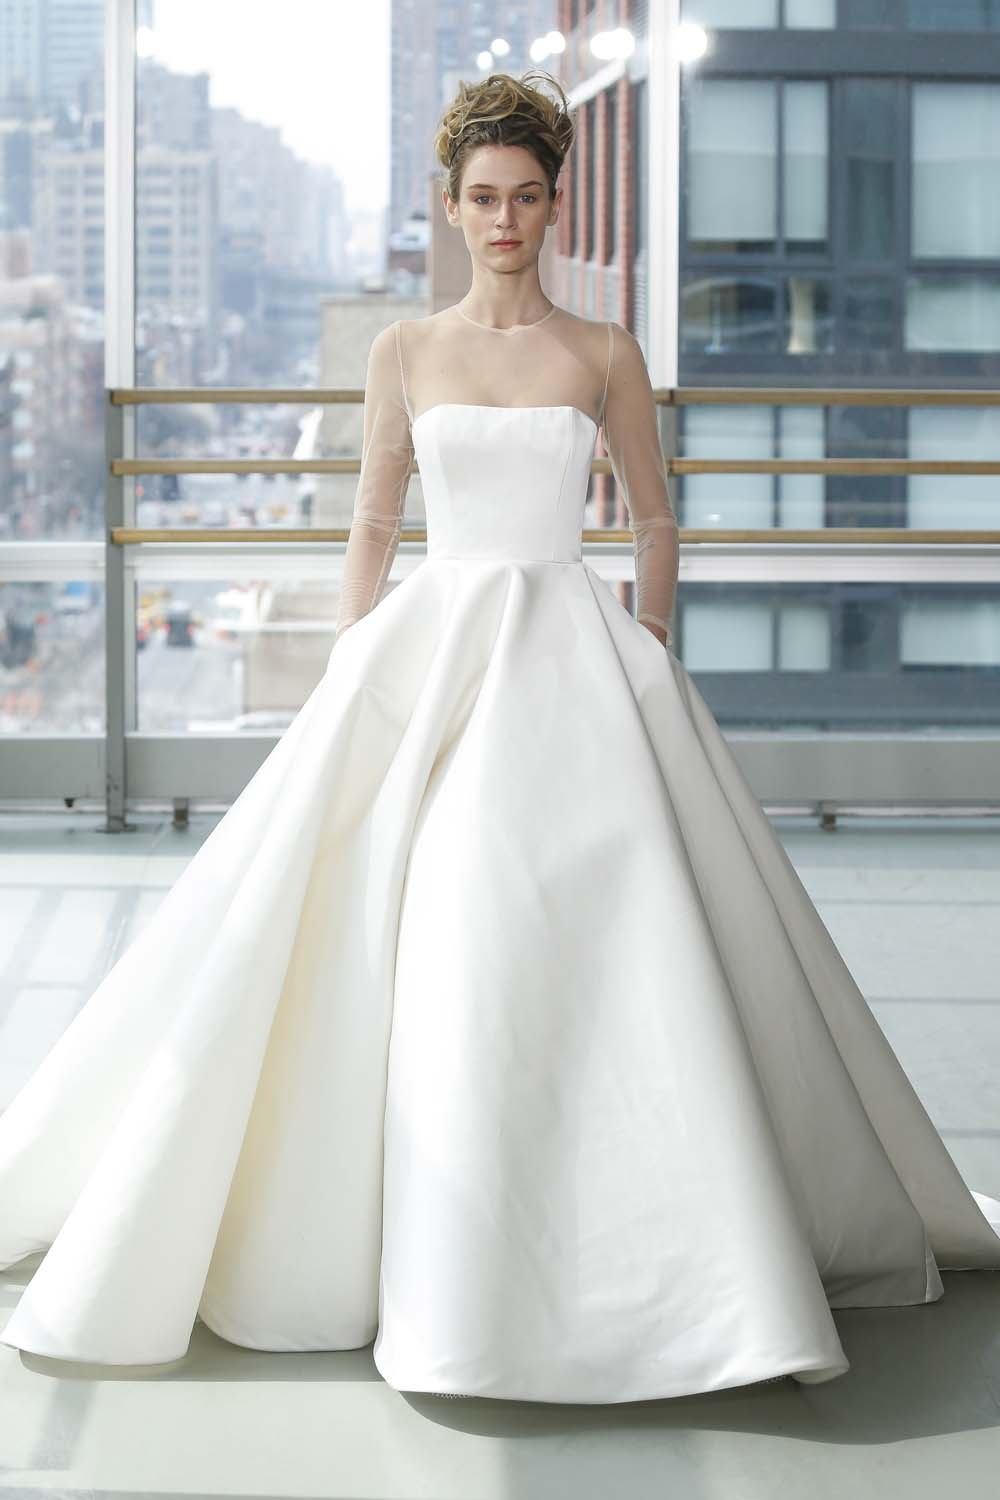 f2288554b314 The Top Wedding Dress Trends For Spring 2019 | Weddingbells